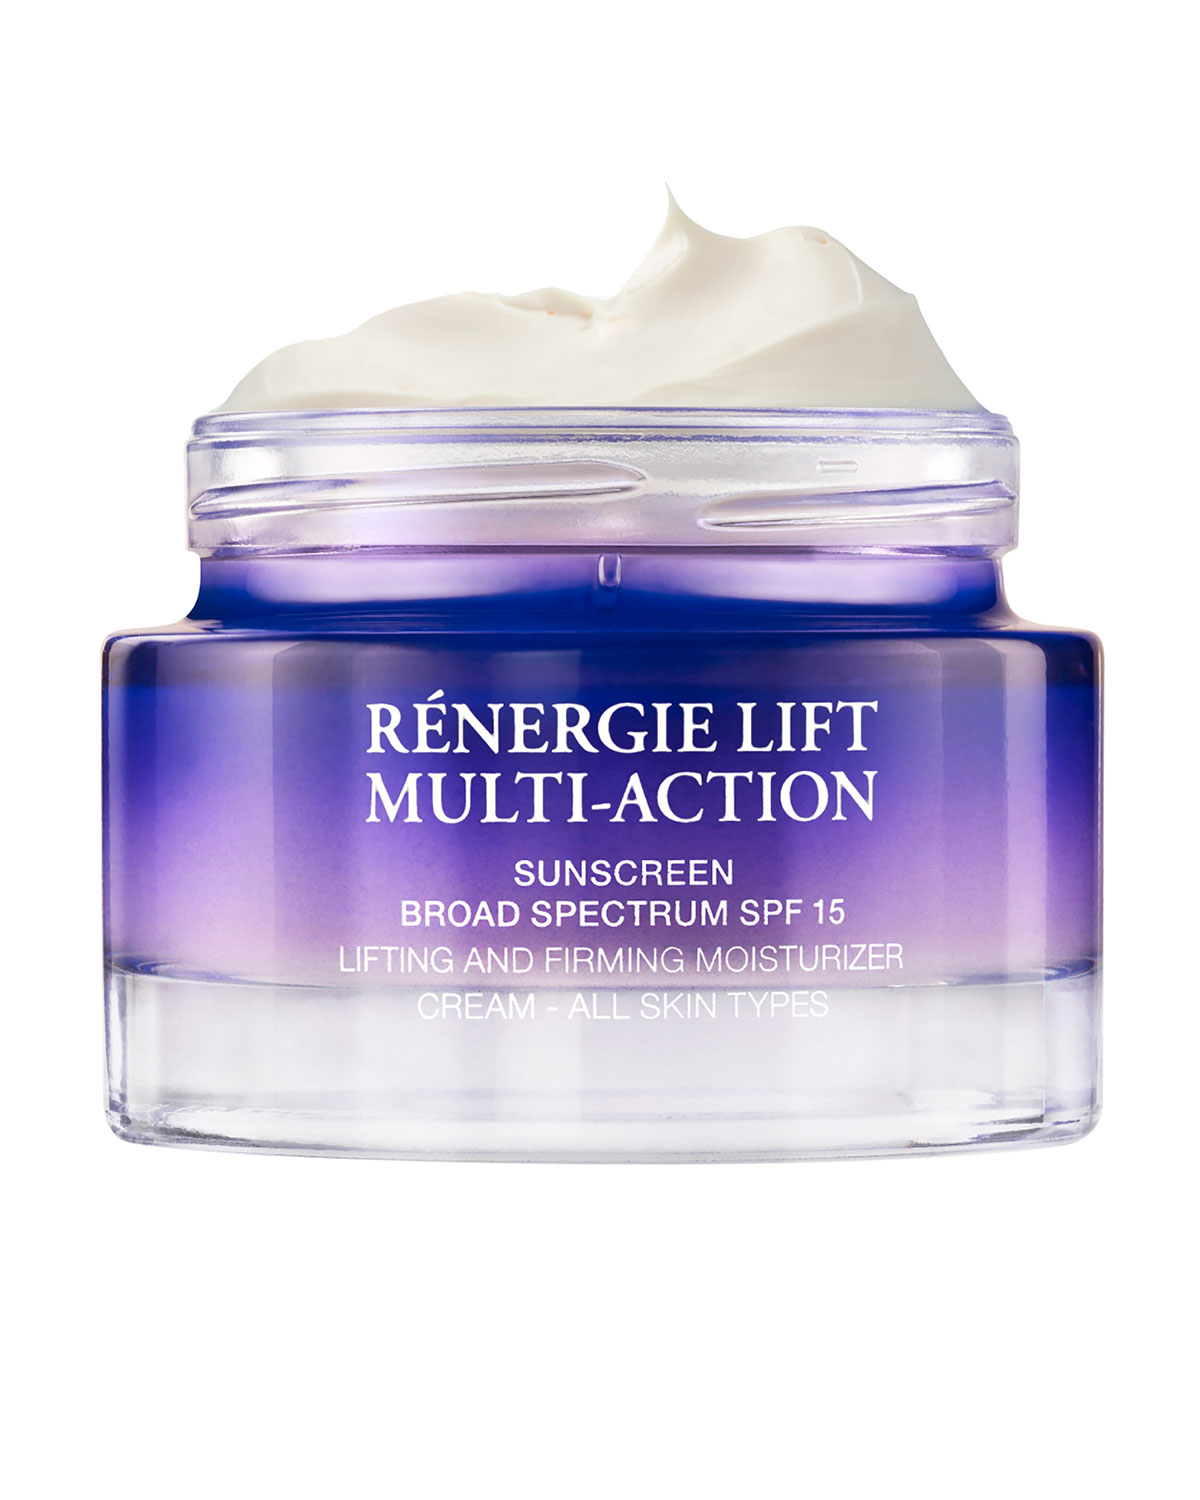 Lancome 2.6 oz. Rénergie Lift Multi-Action Day Cream With SPF 15